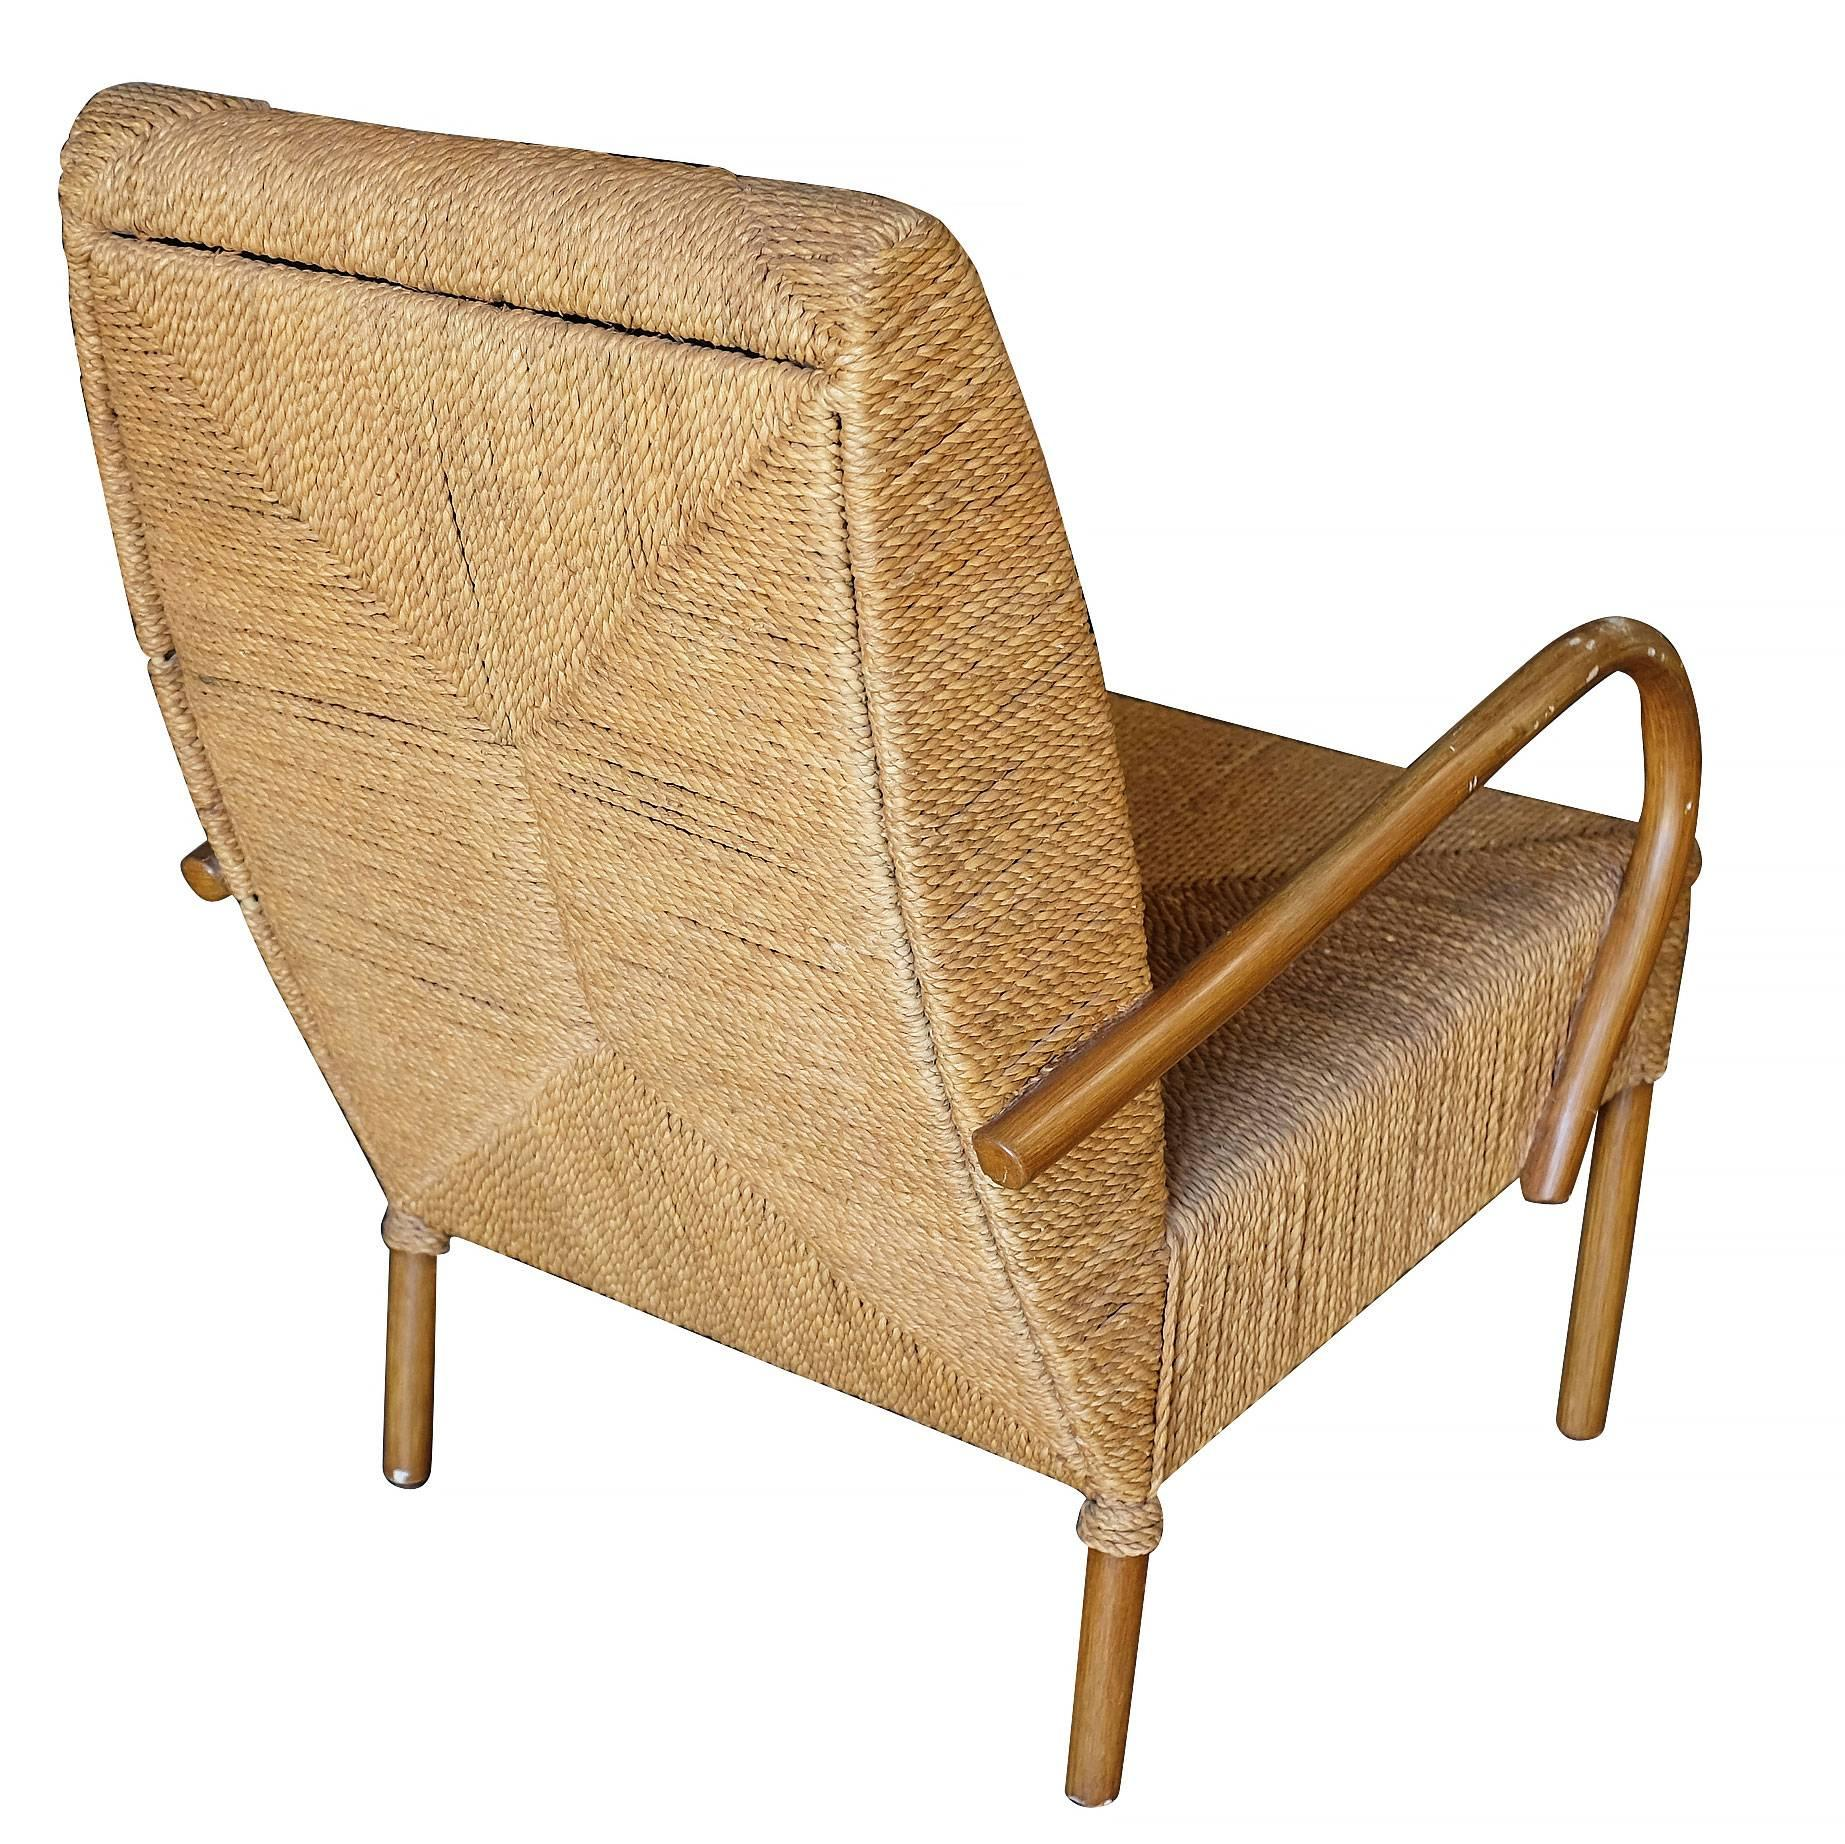 Big Wicker Chair Large Wicker Seat Lounge Chair For Sale At 1stdibs